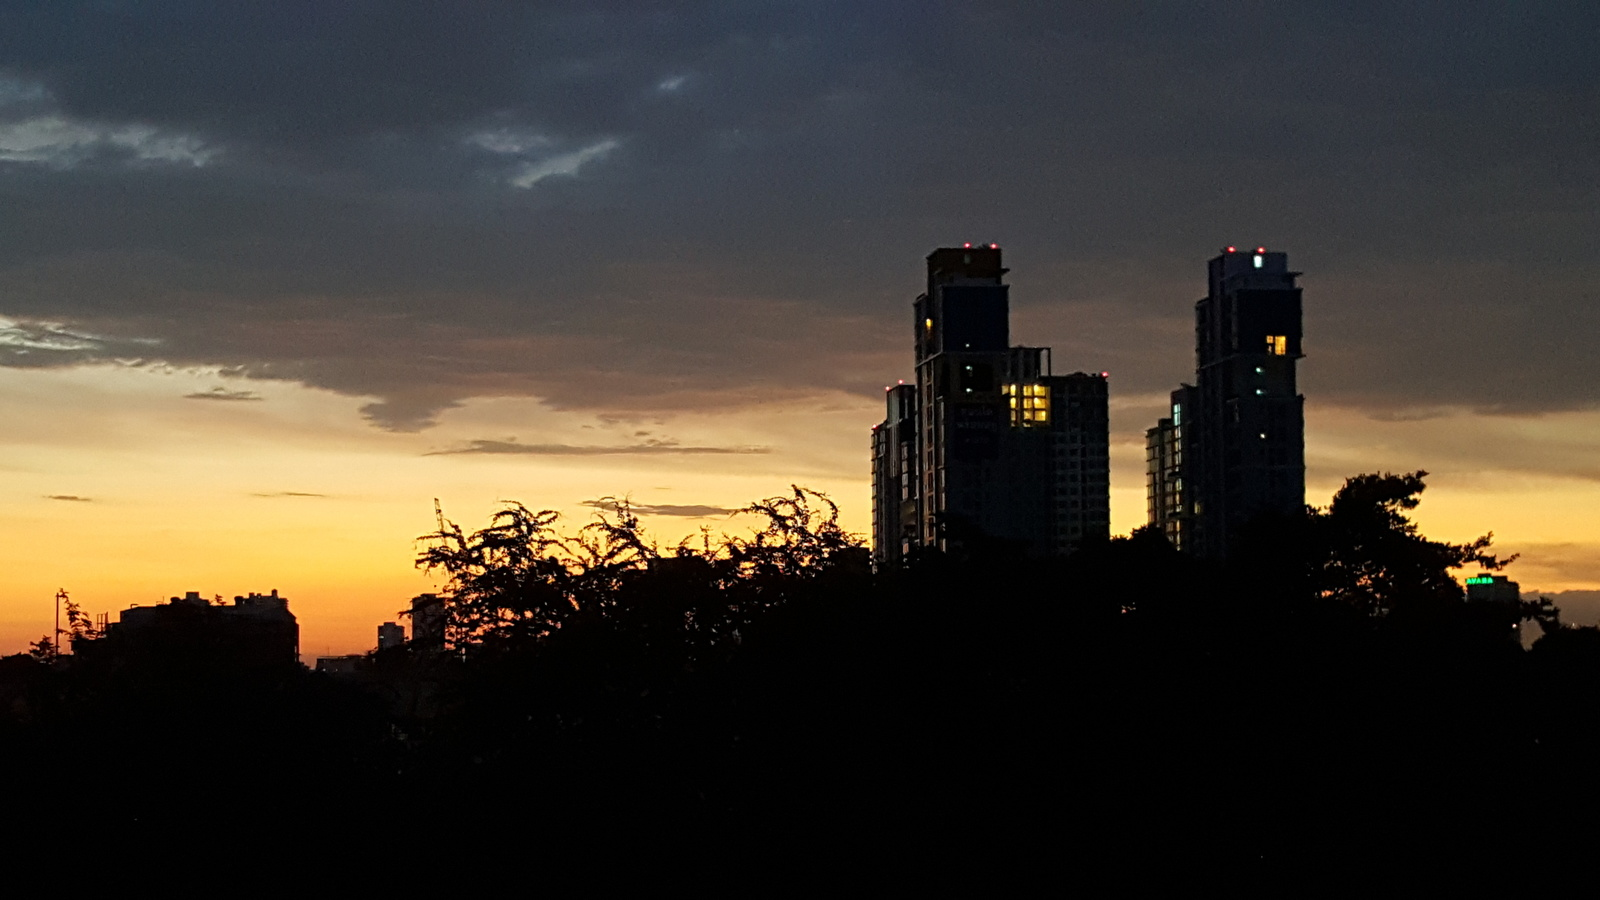 A couple of tall buildings silhoetted against the first light of dawn